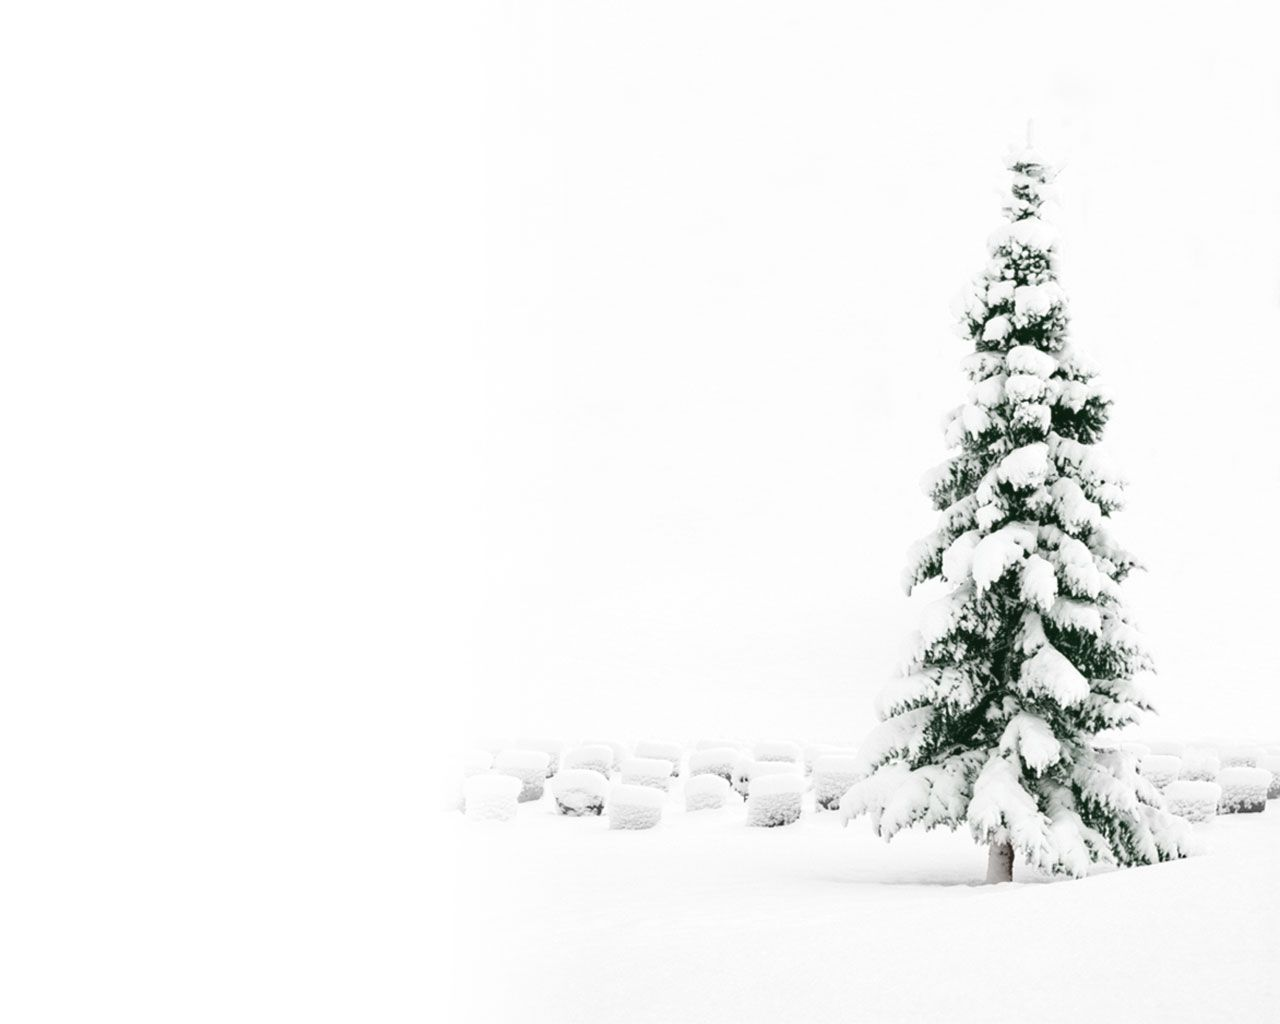 Christmas Snow Background Clipart Black And White.